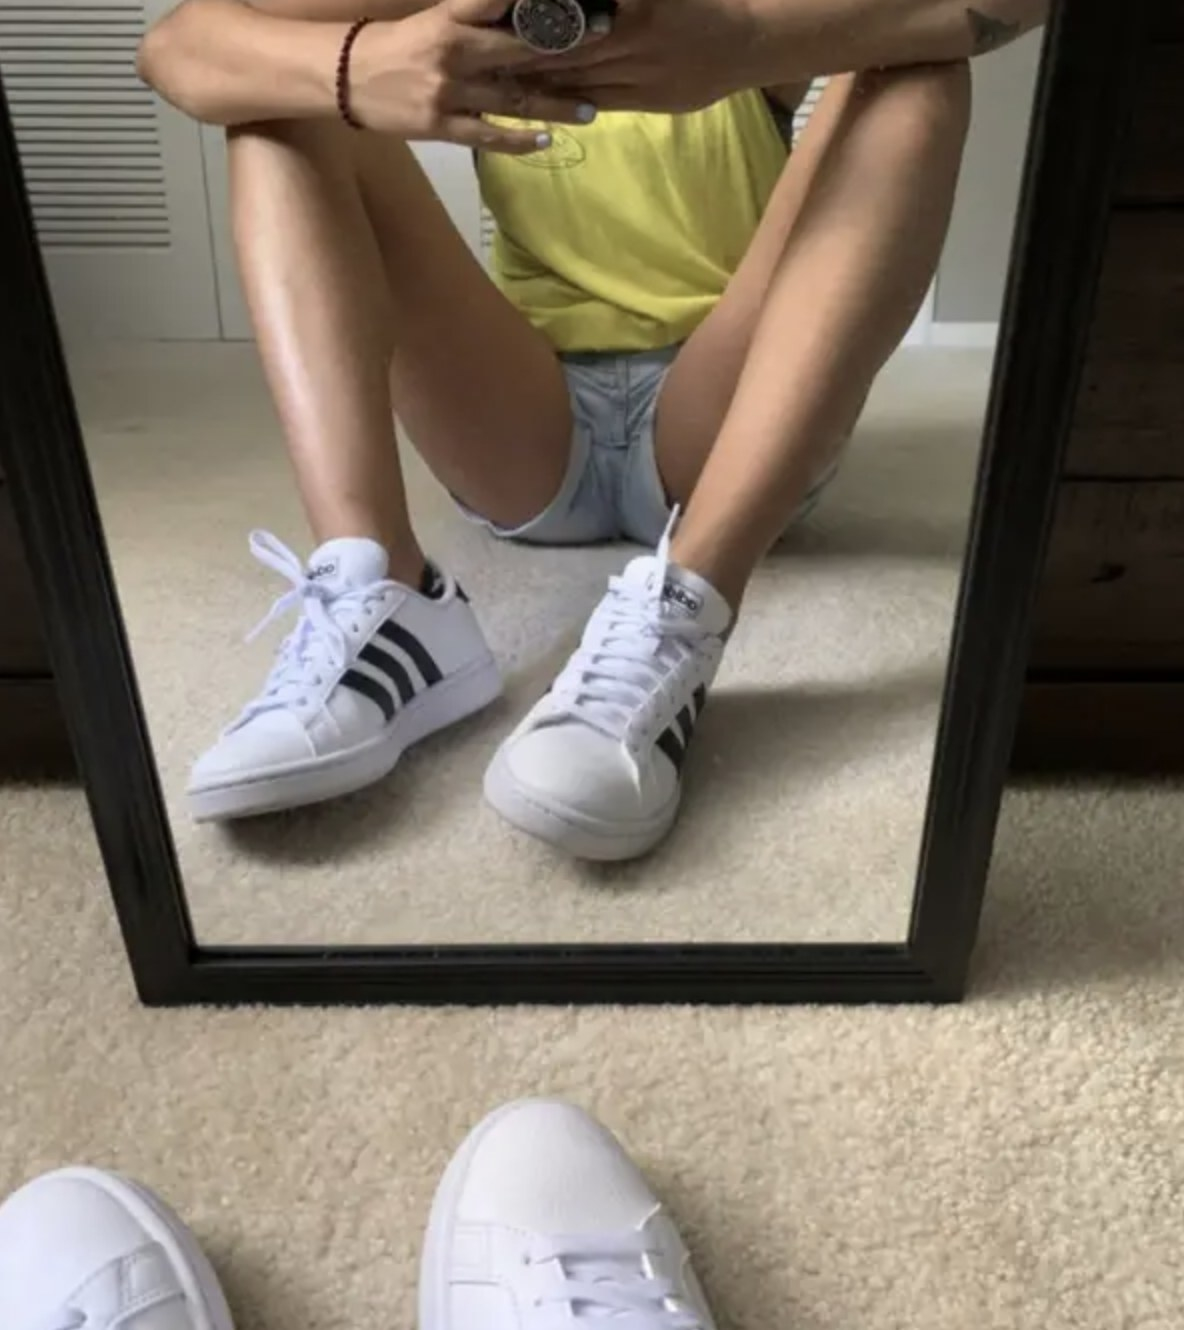 Person is wearing white sneakers with three black stripes on the sides